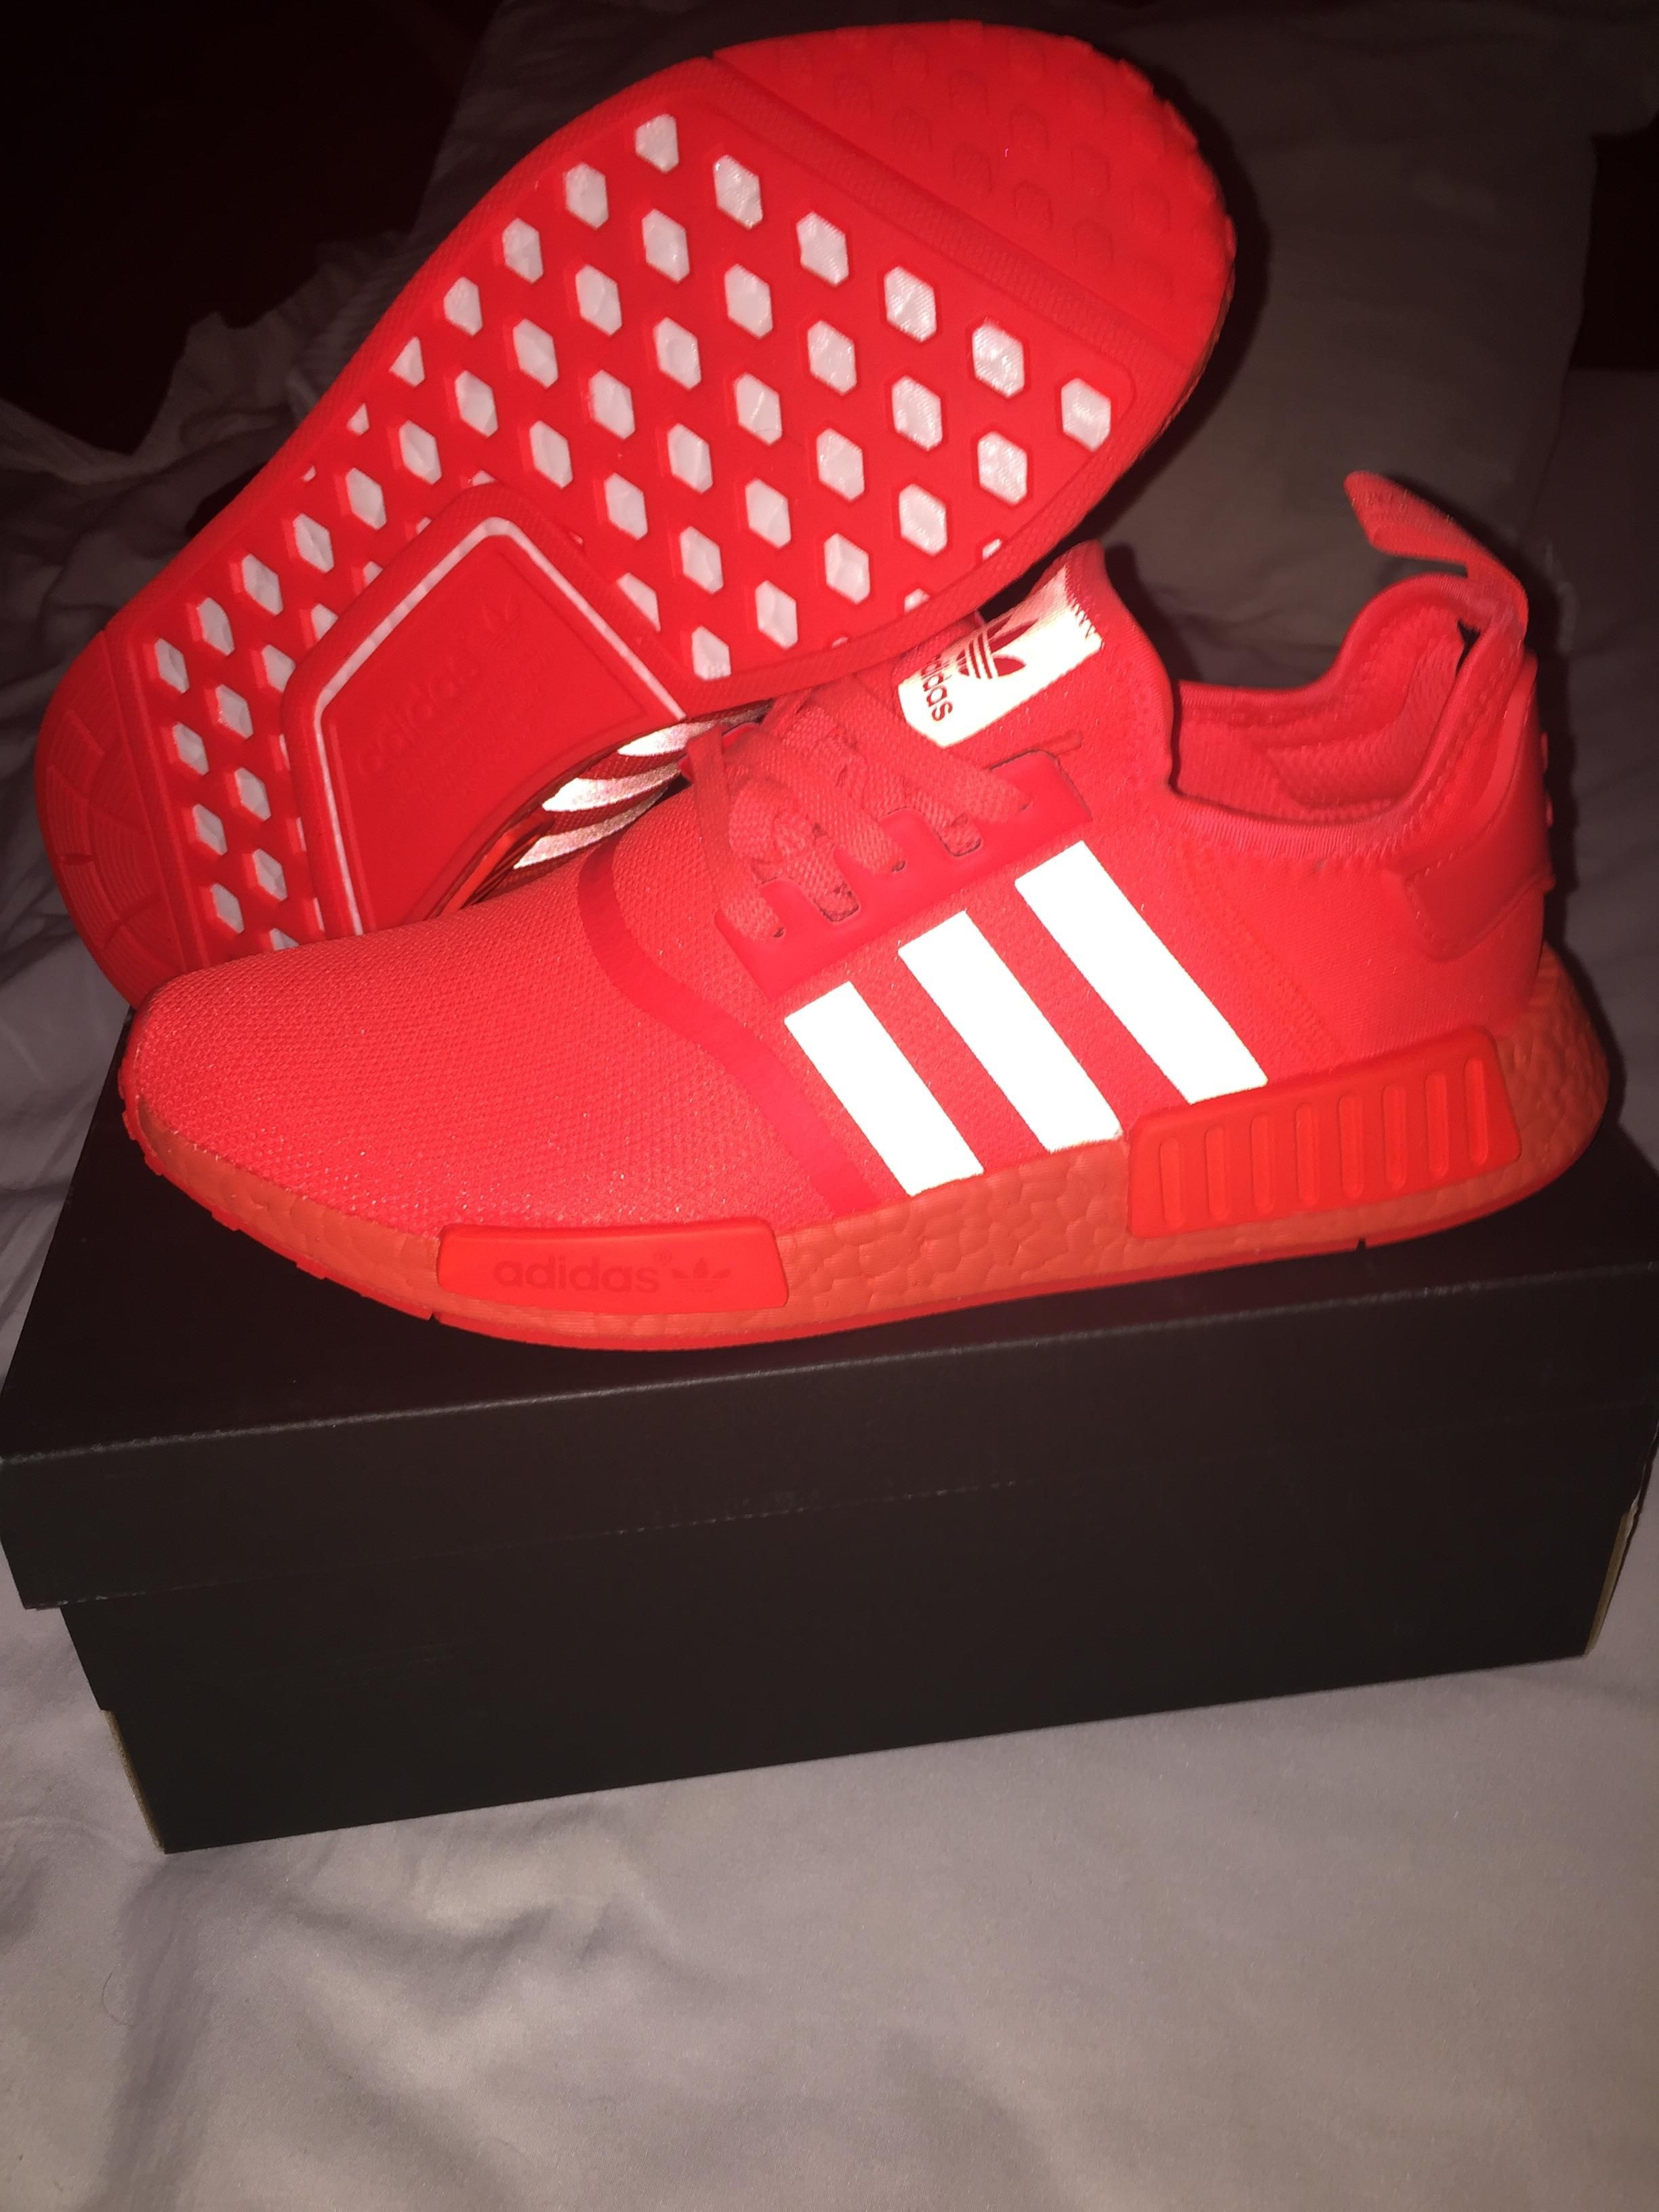 buy popular 4af05 c653f  LPU  Finally got these for a steal (Adidas NMD Solar Red)